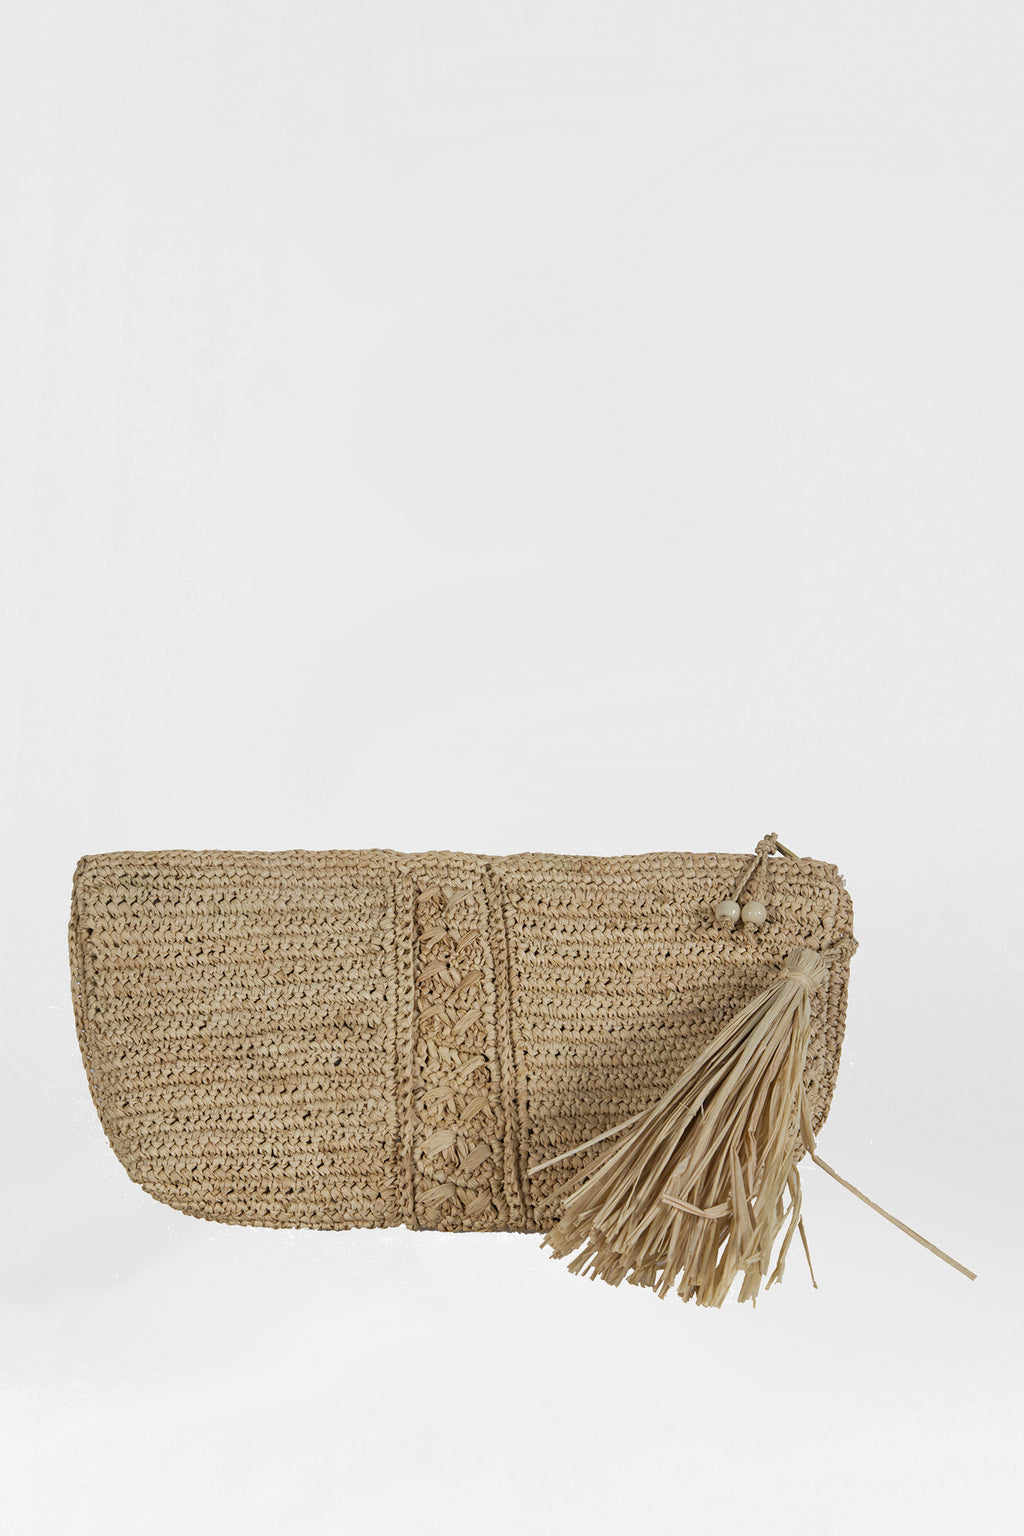 Buy Ilona Clutch from MADE IN MADA at PAYA boutique